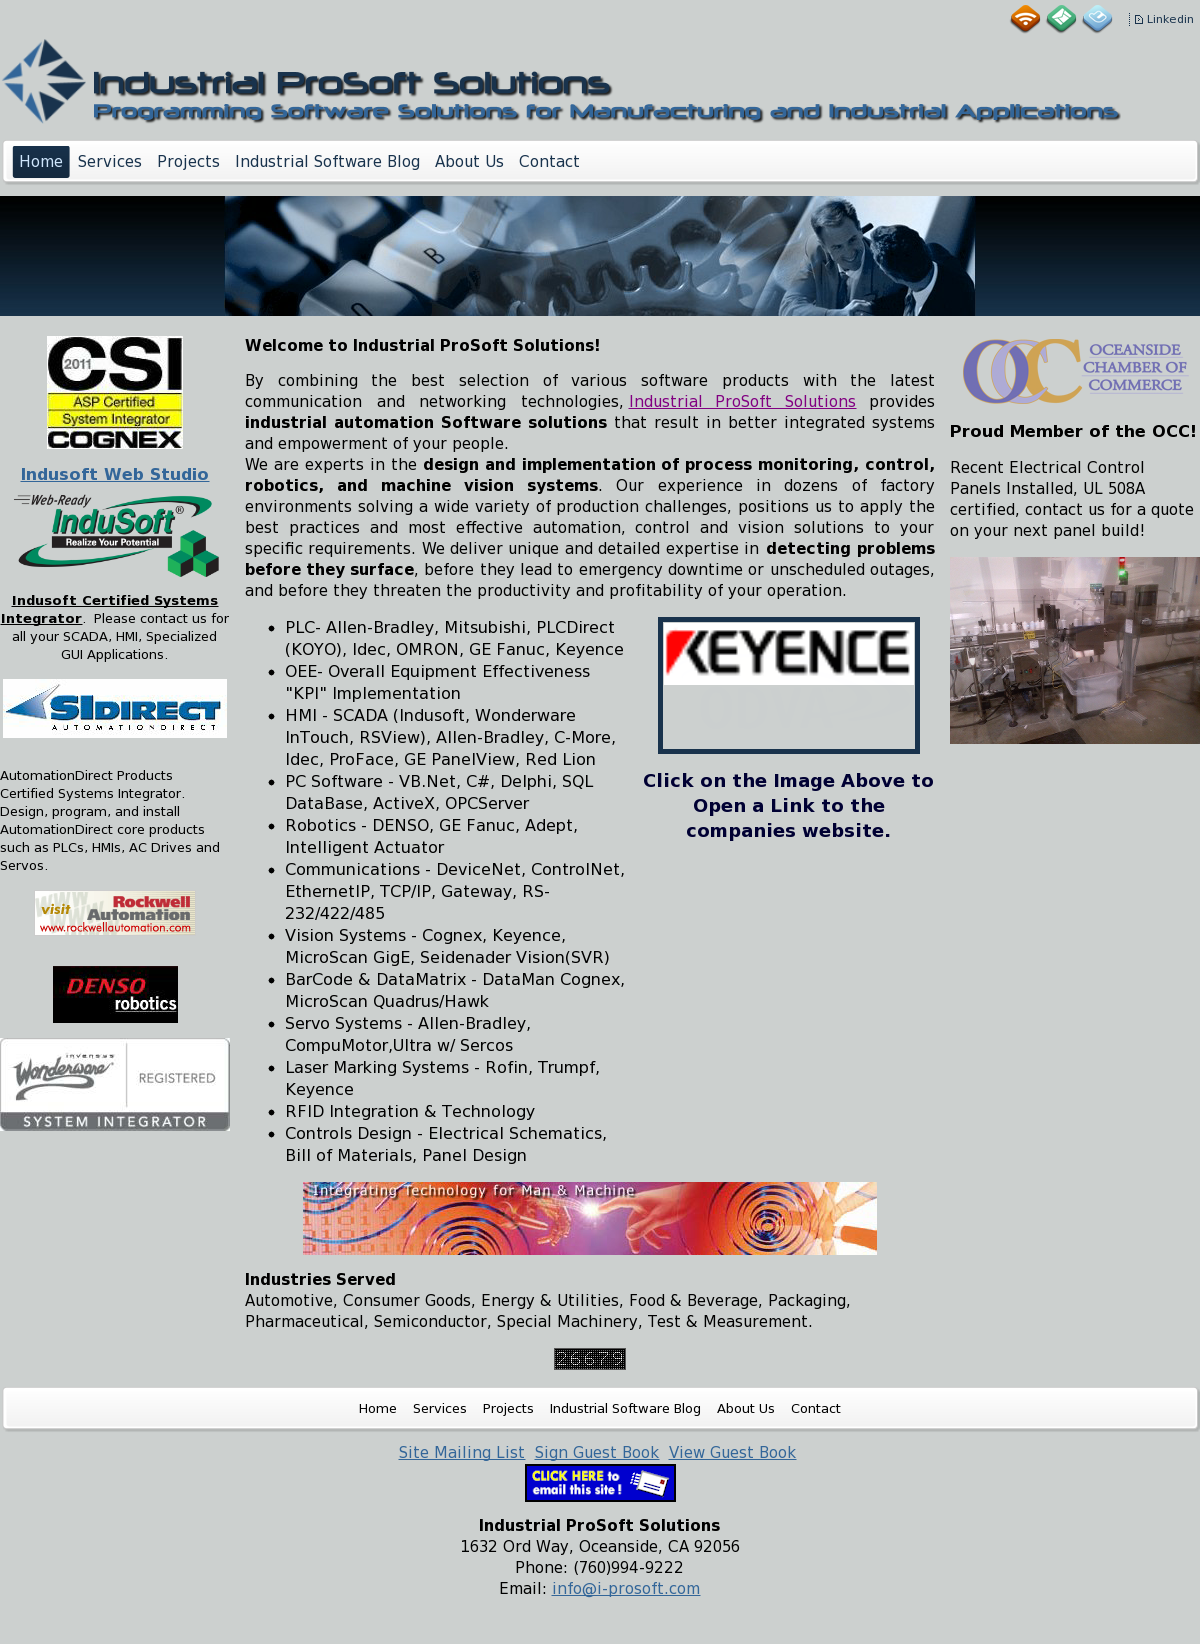 Industrial ProSoft Solutions Competitors, Revenue and